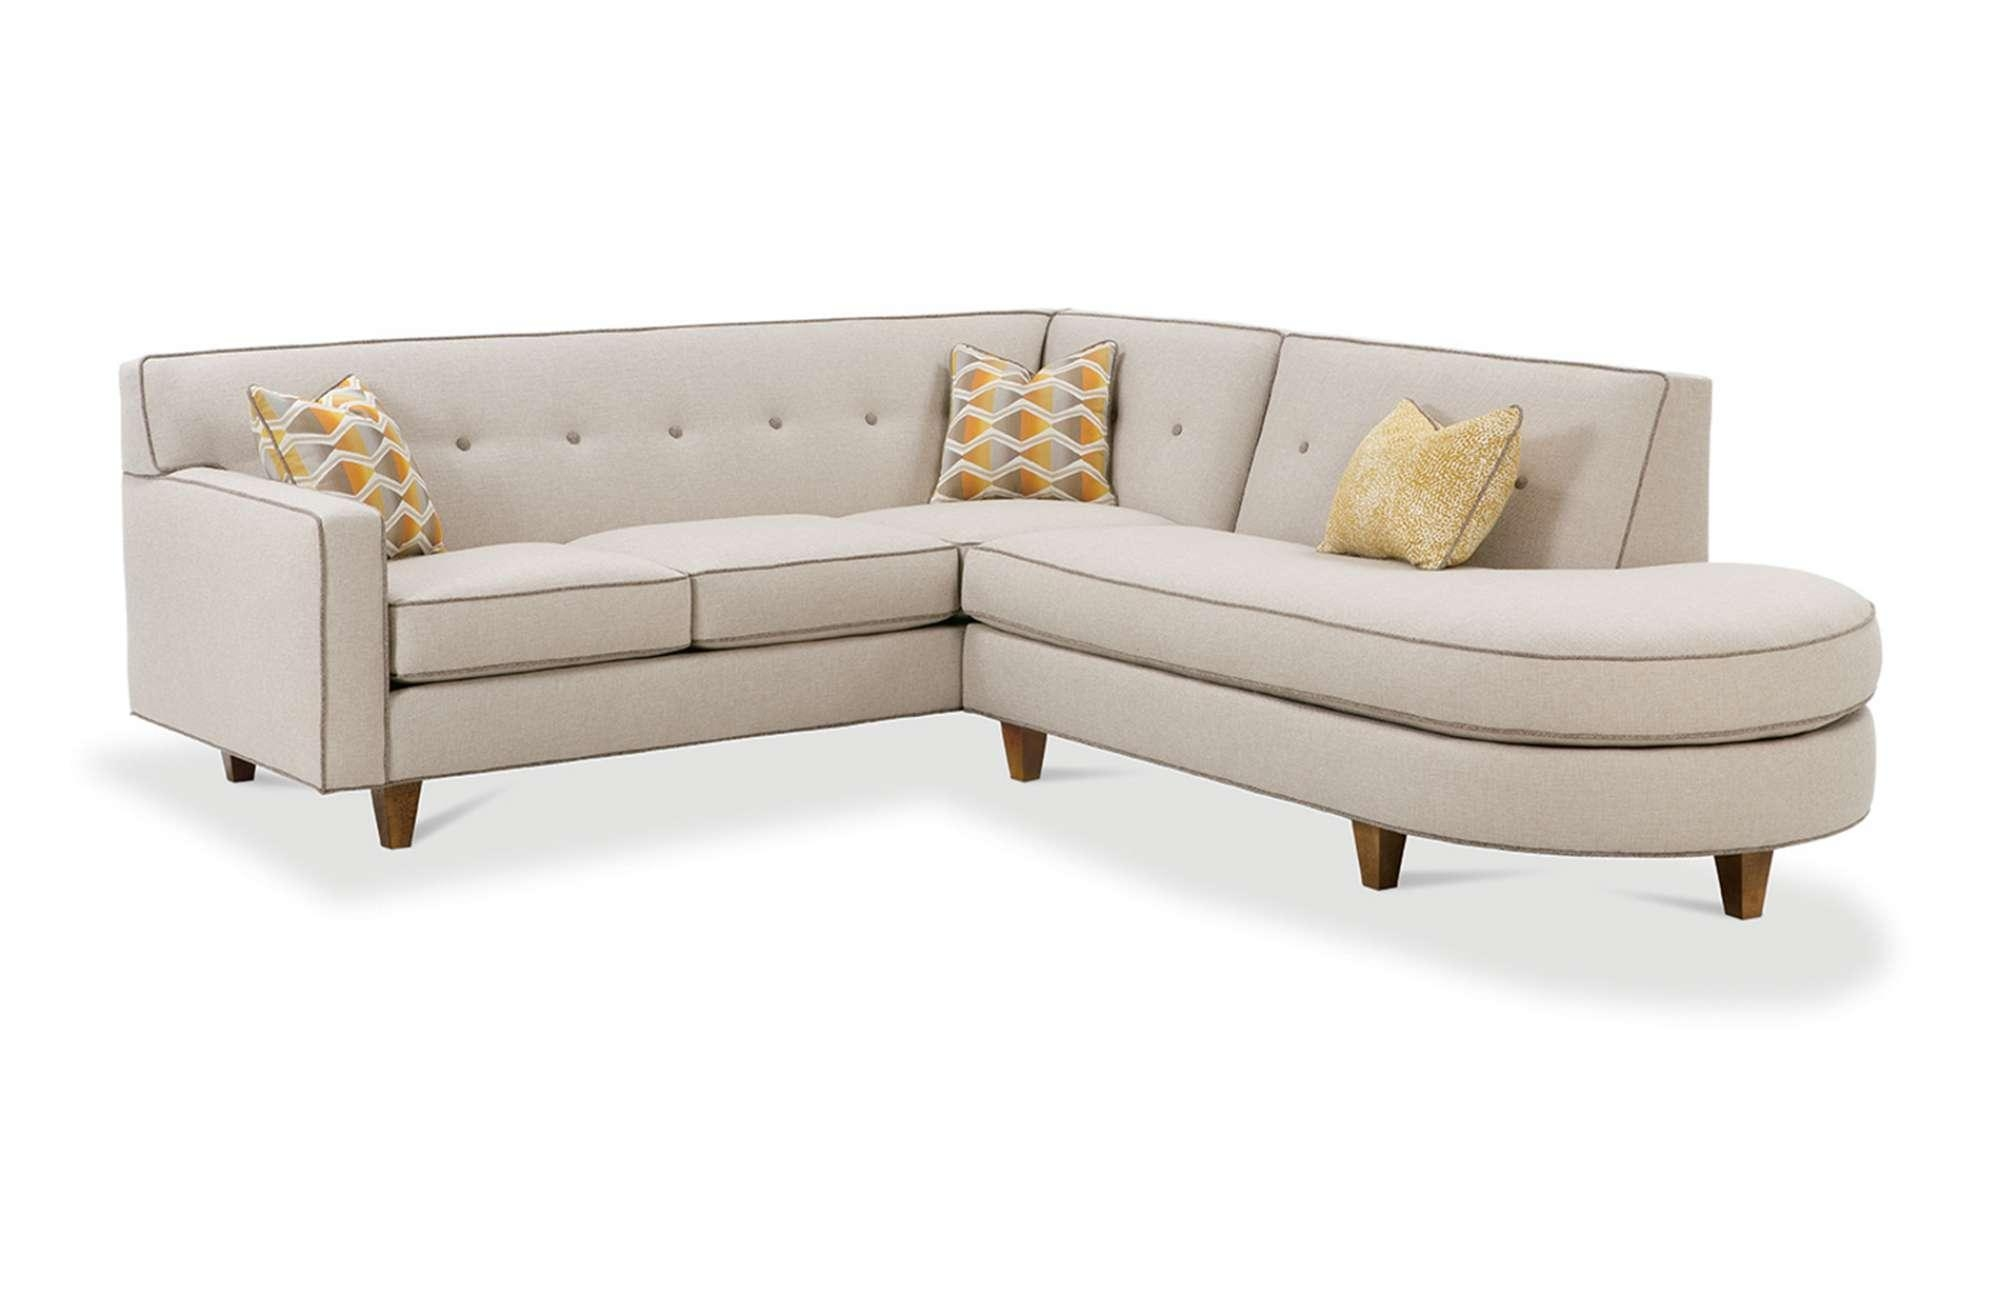 Dorset Sectionalrowe Furniture With Rowe Sectional Sofas (Image 3 of 20)